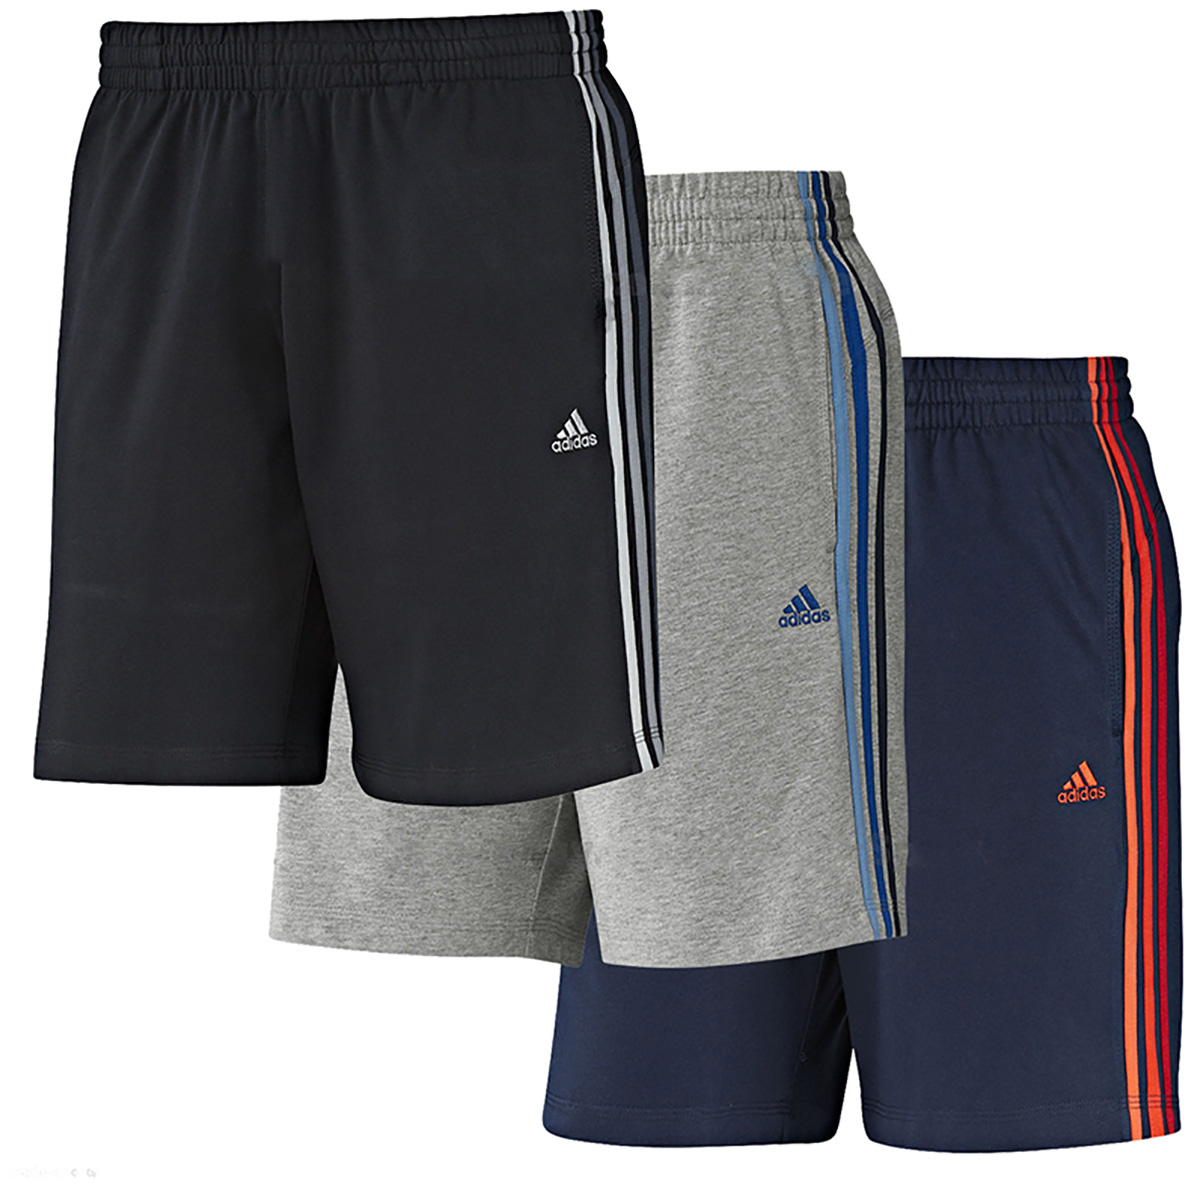 Details about Mens Adidas Clima 365 Performance Ess Cotton Jersey Shorts Summer Knee Short